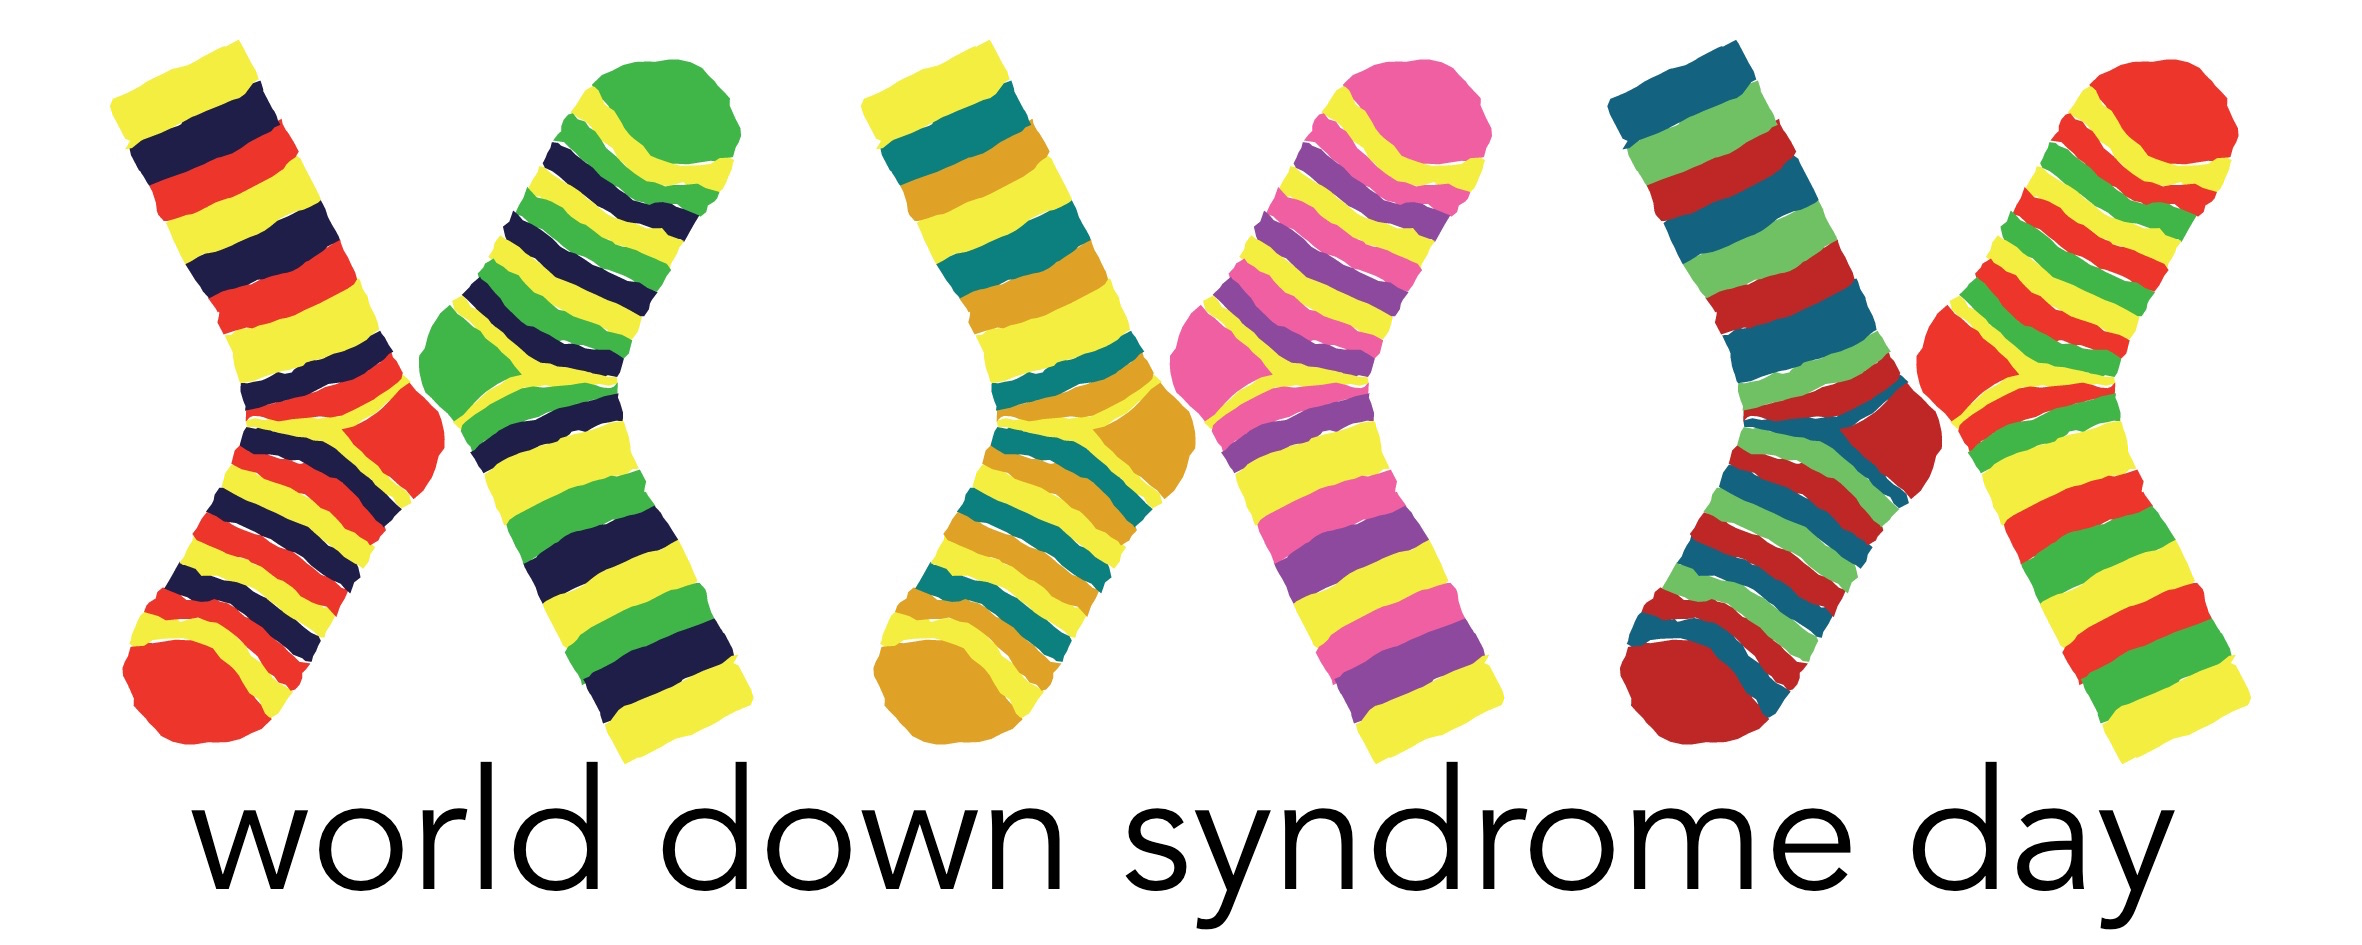 down syndrome day 2017